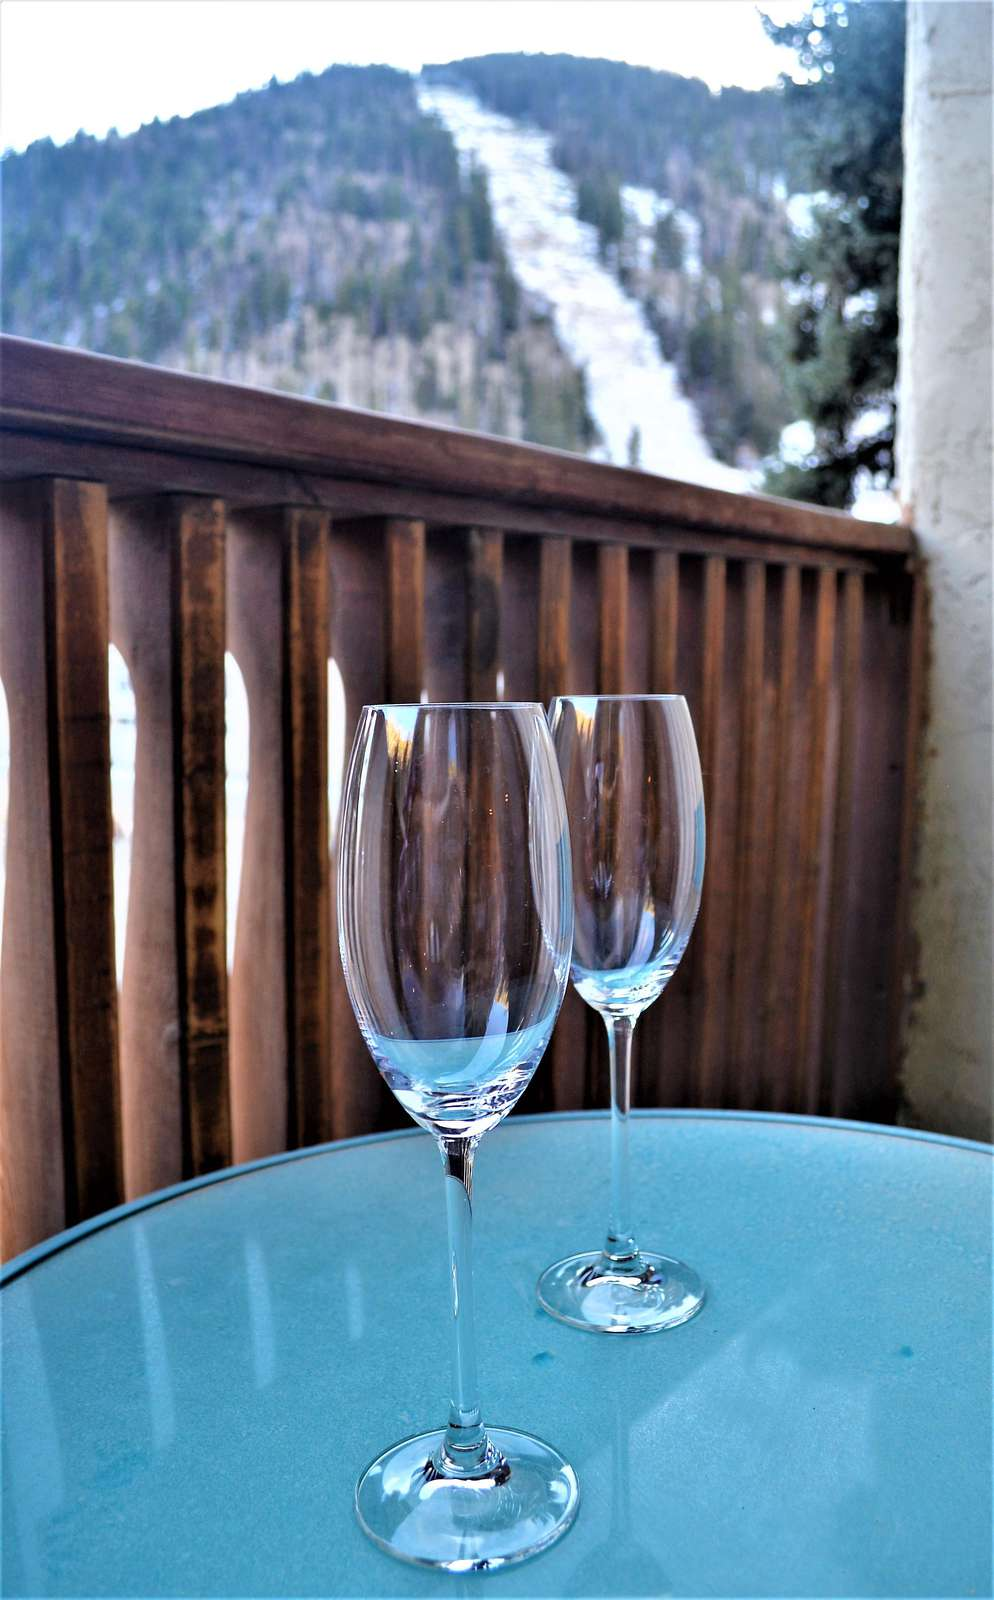 Apres Ski on Private balcony with View to Base area